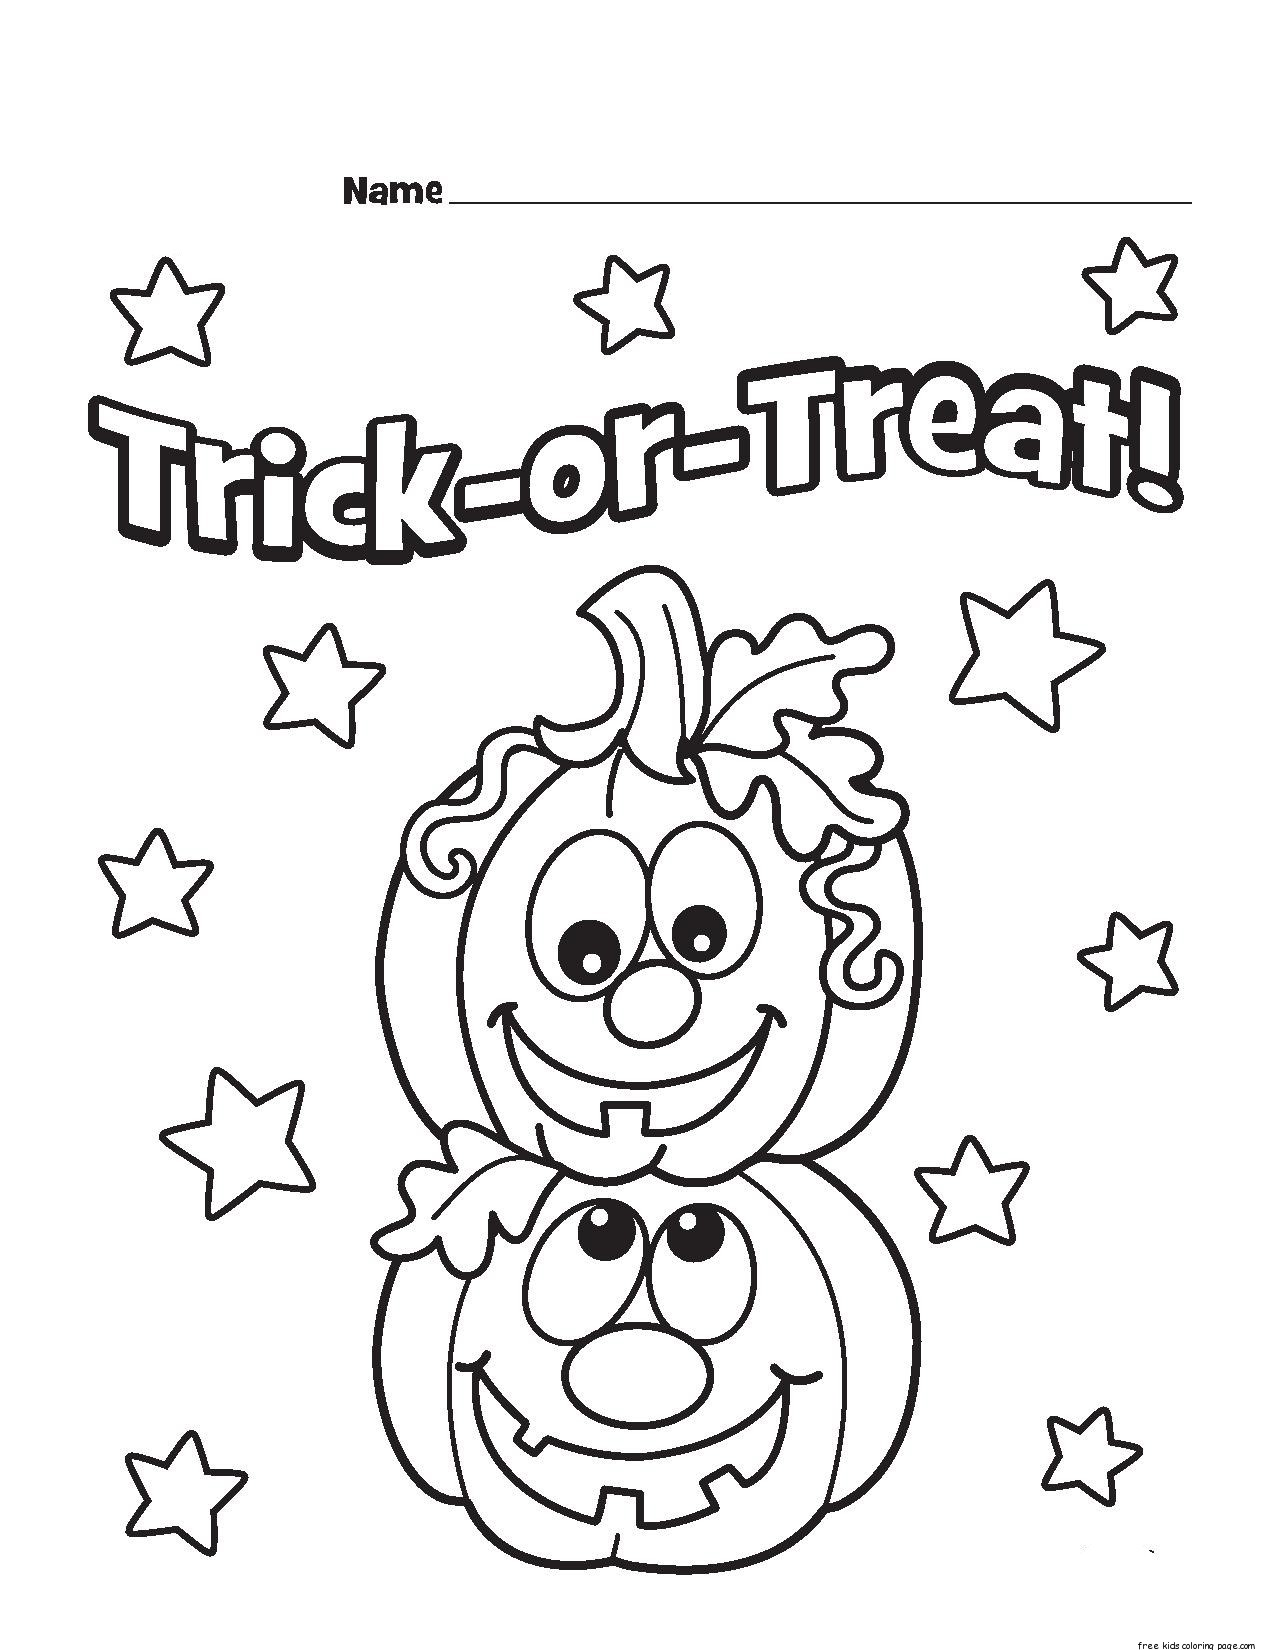 Printable Trick Or Treat Pumpkins Designs Coloring Pagefree Printable Coloring Pages For Kids